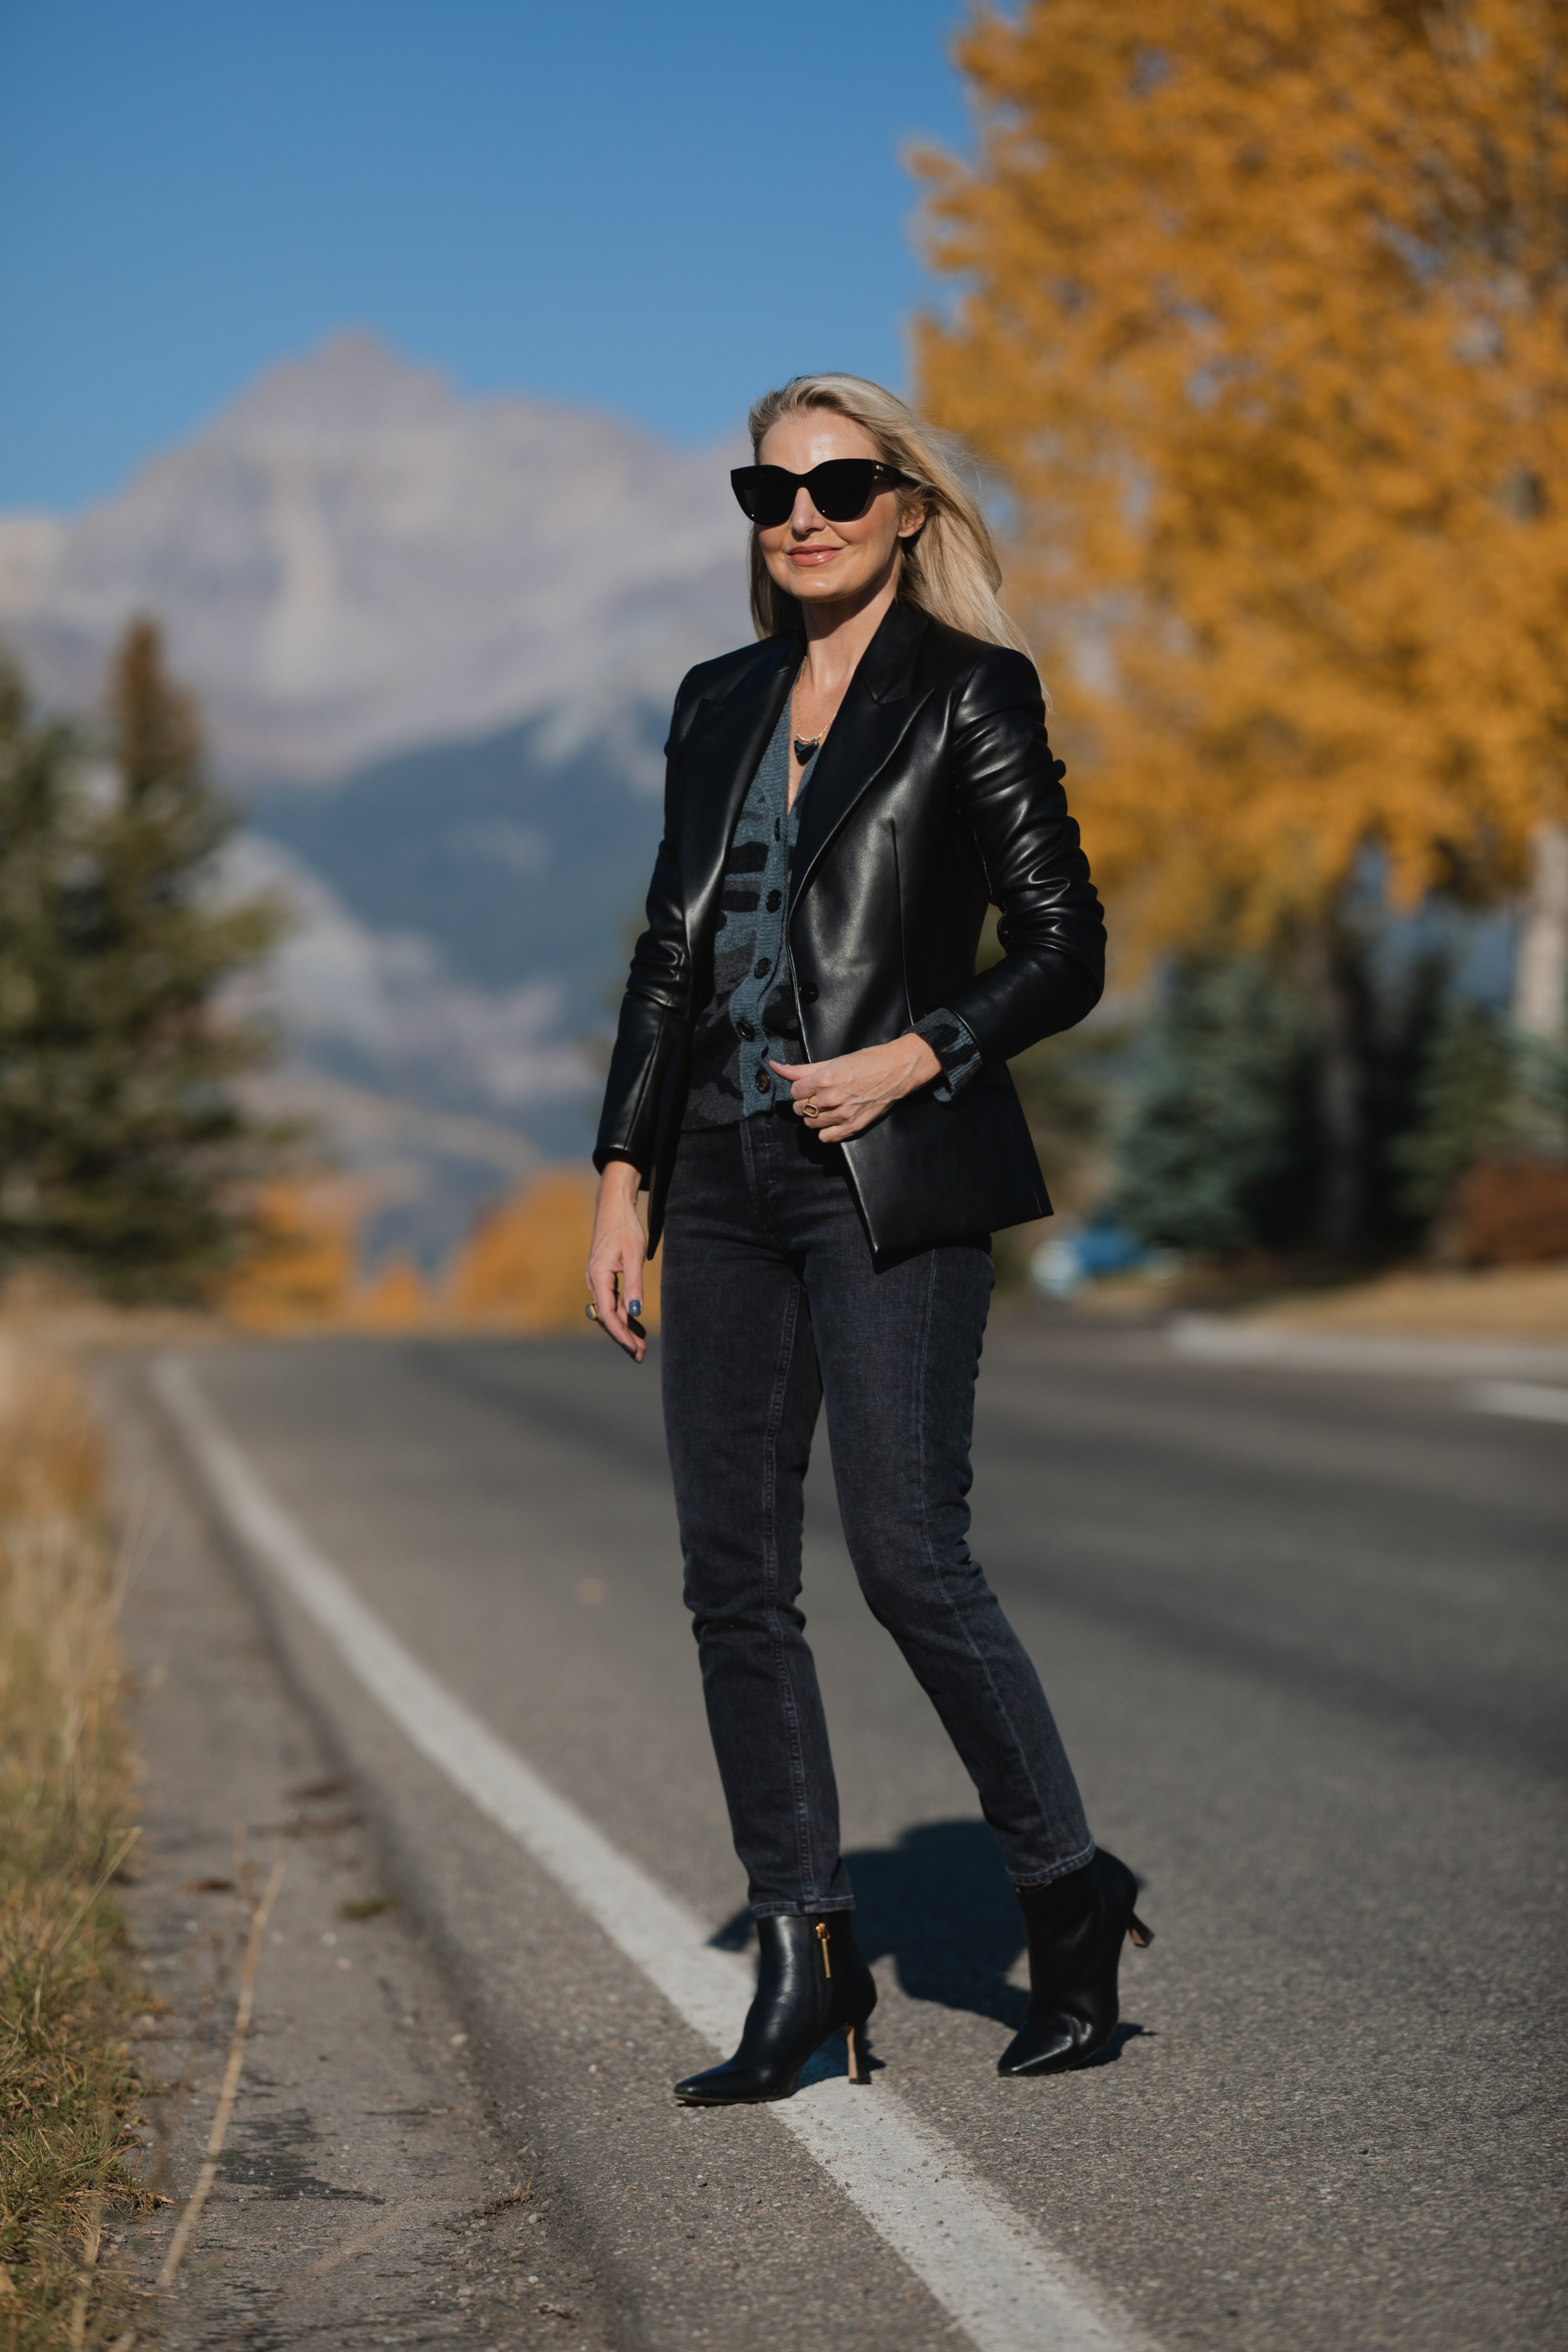 Favorite Fall Jackets, Erin Busbee of Busbee Style wearing a black faux leather blazer by Theory with dark gray wash Agolde Nico jeans, black Louise et Cie booties, and Rails camo cardigan sweater in Telluride, Colorado